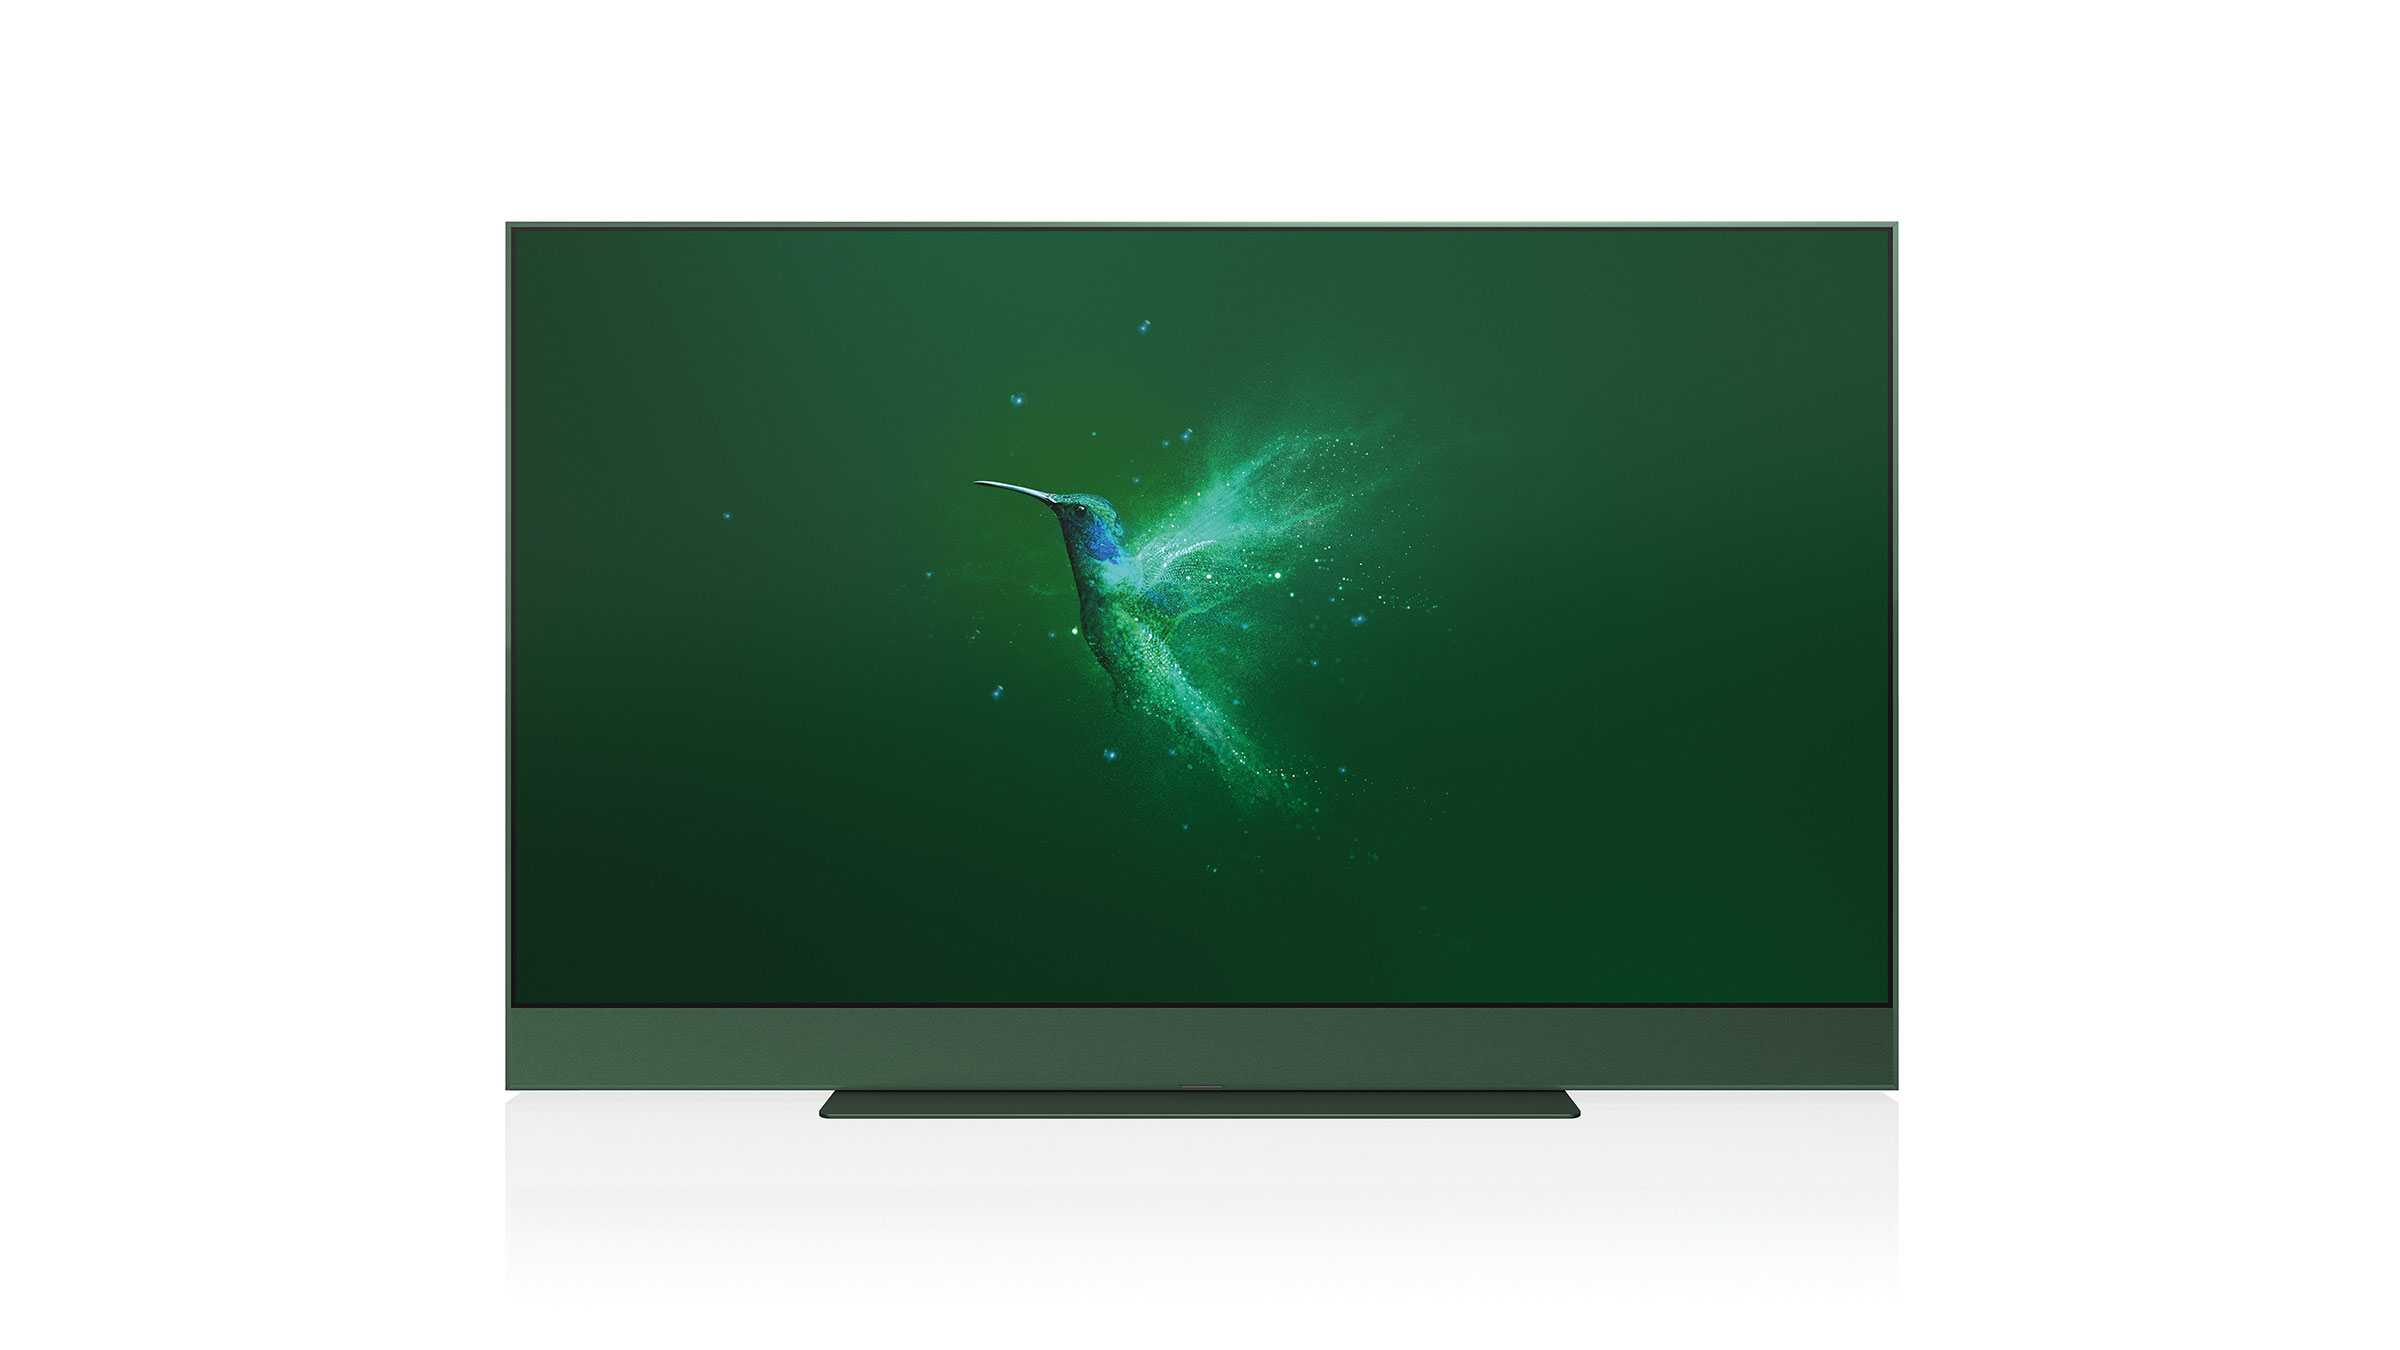 You've known the sky is blue ever since you learned what color blue is, but where does this blue hue come from if air is invisible? Introducing Sky Glass, the New Streaming TV from Sky